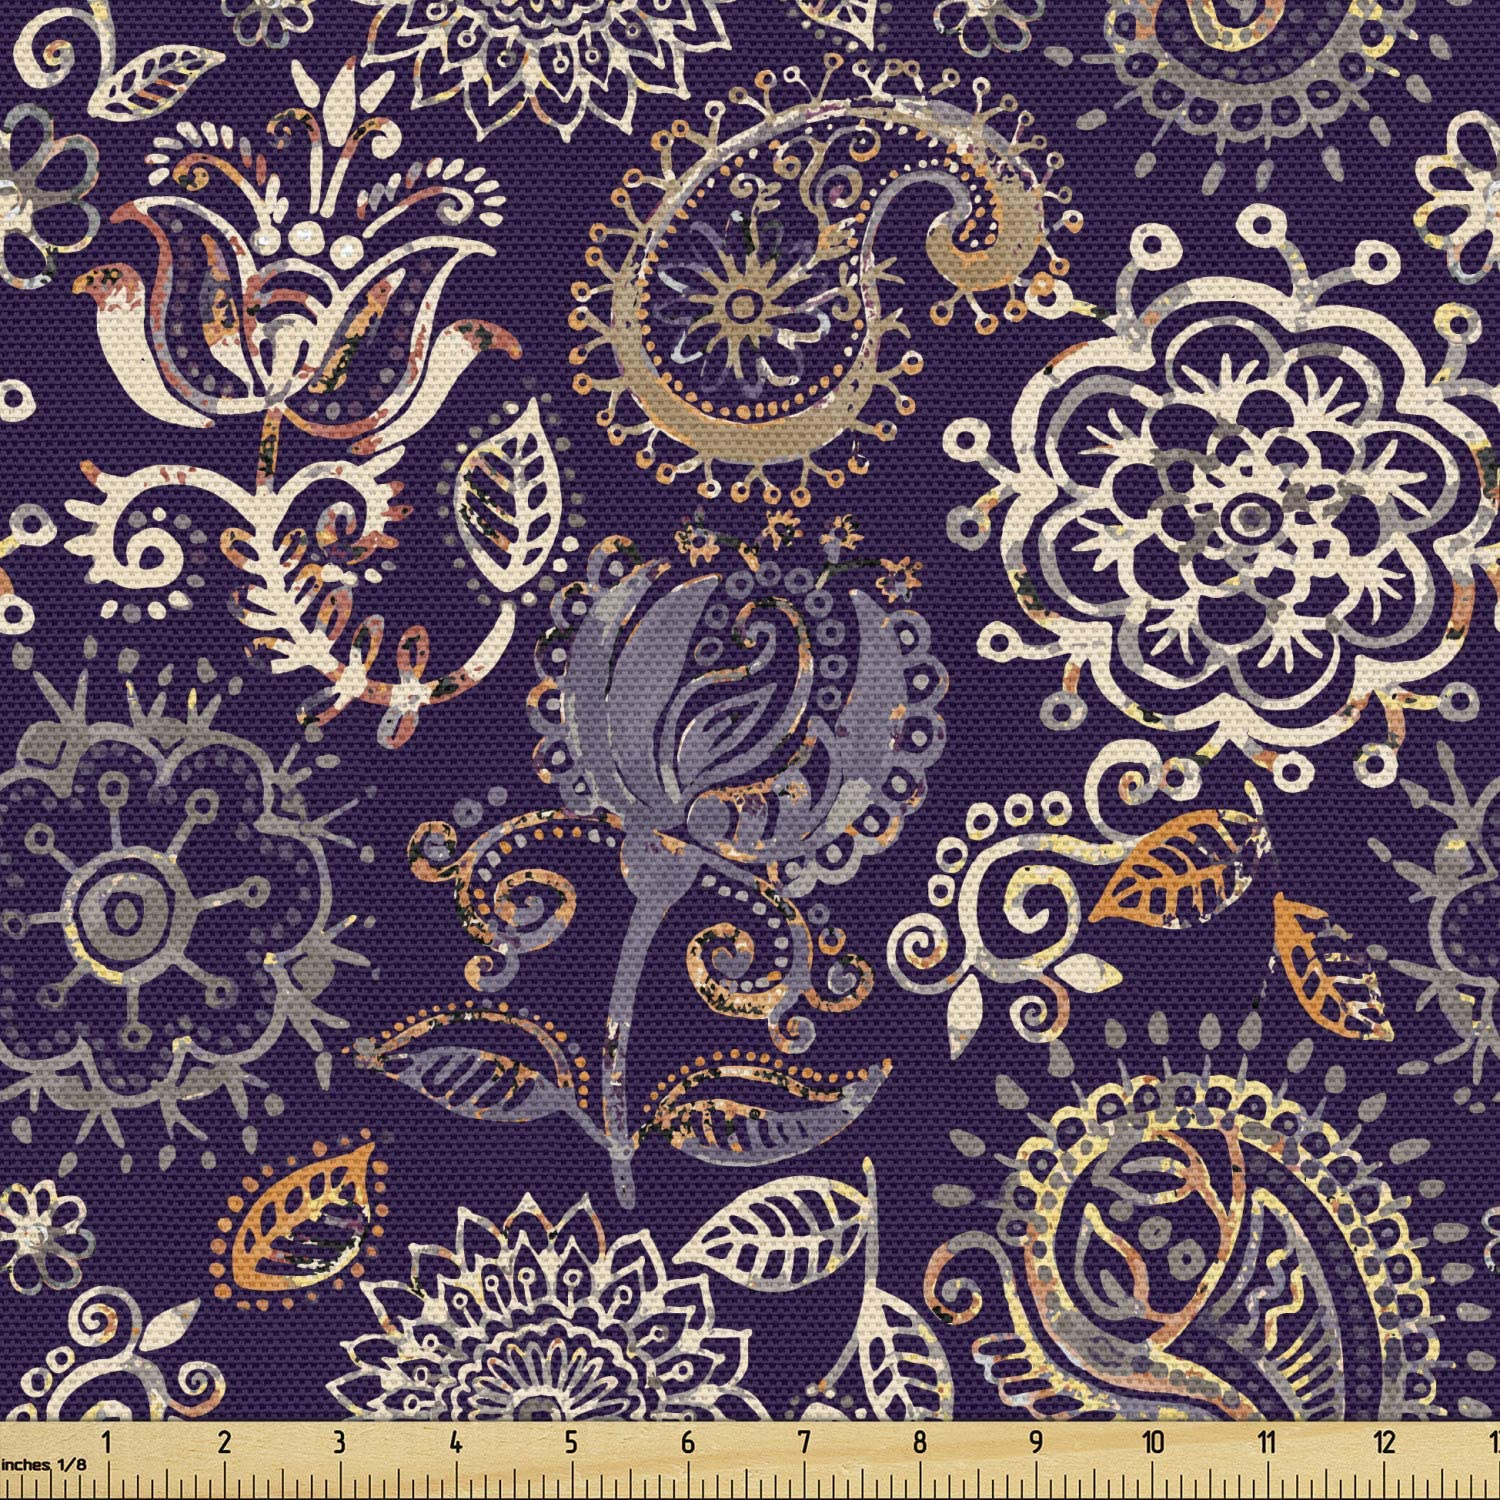 Lunarable Paisley Fabric by The Yard, Botanical Floral Batik Pattern with Grungy Paint Effect Curly Petals and Leaves, Decorative Fabric for Upholstery and Home Accents, 3 Yards, Indigo Amber